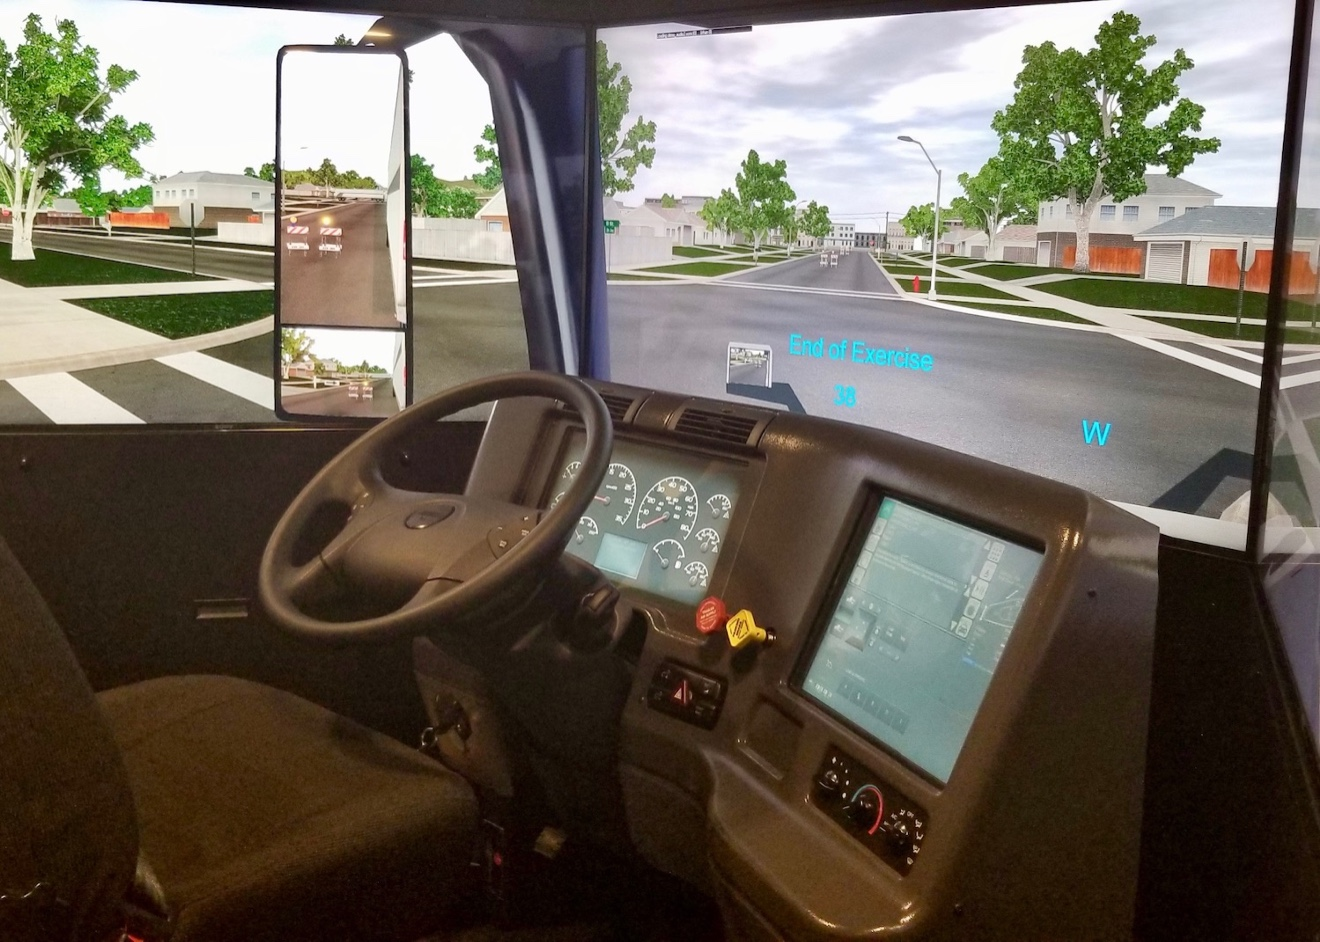 Inside the new Be Pro Be Proud mobile unit, visitors can try their hand at driving an 18-wheeler, virtually of course.